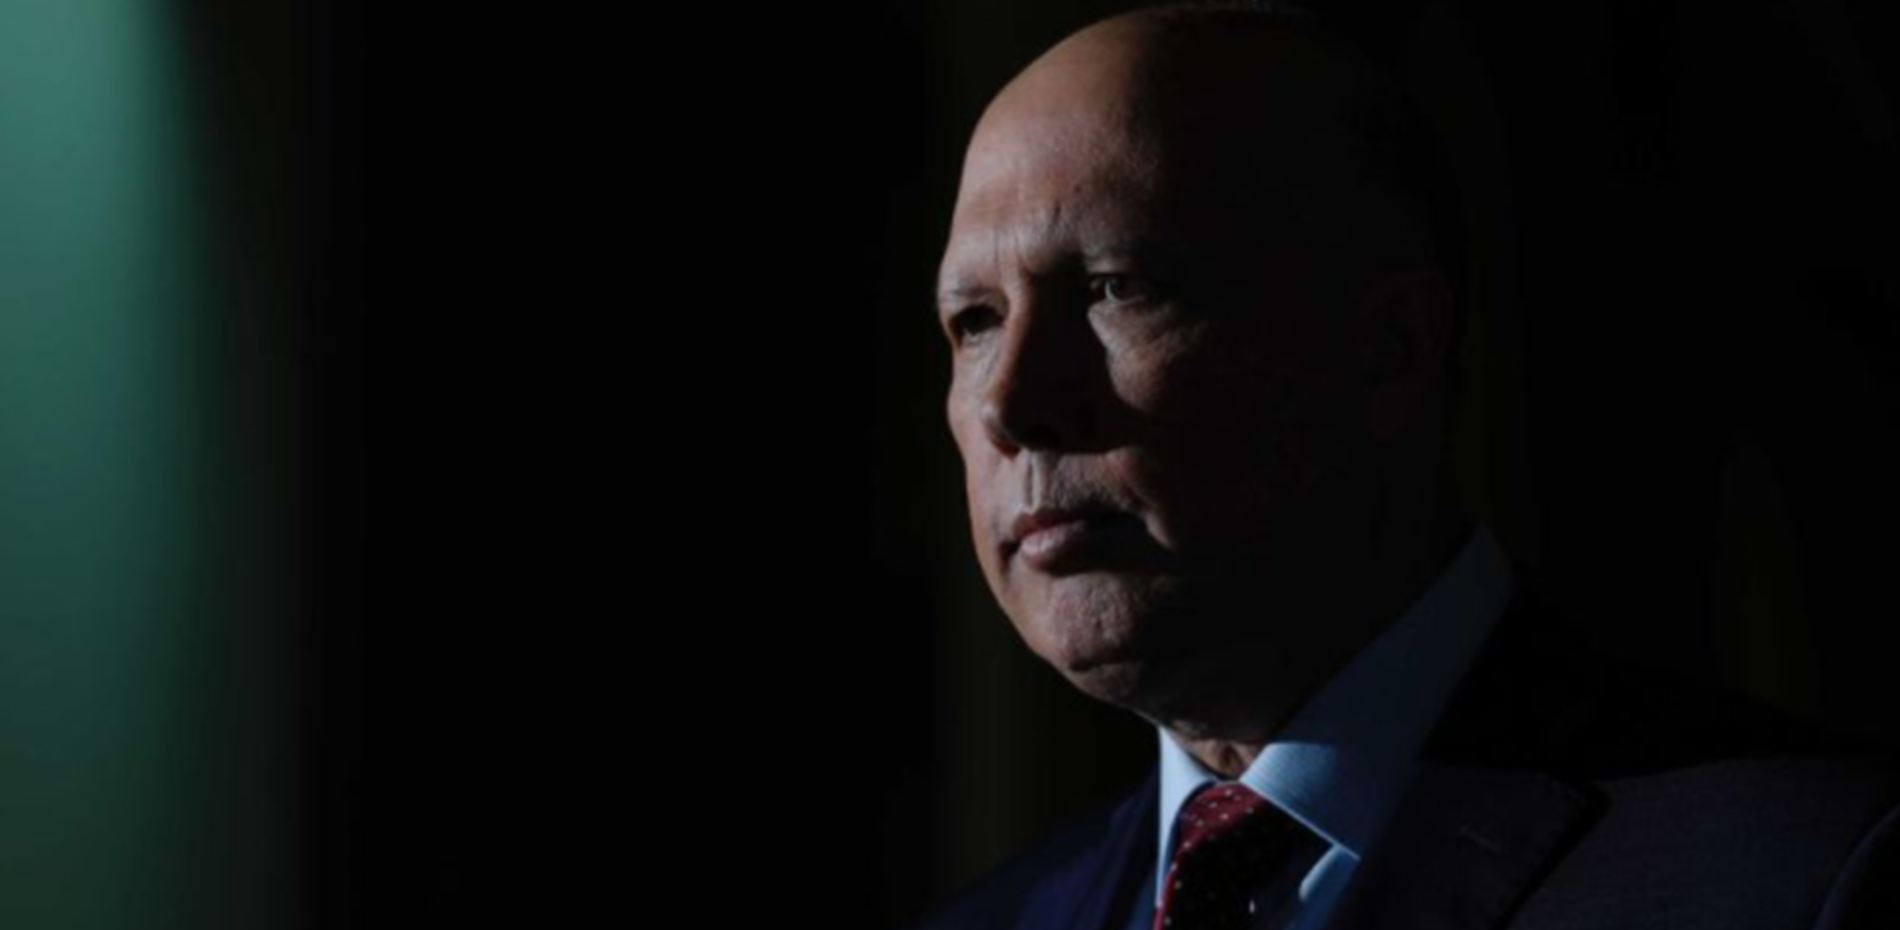 DODGY DUTTON FOLLOWS MCKENZIE'S LEAD - WELCOME TO SAFER SEATS RORTS Main Image